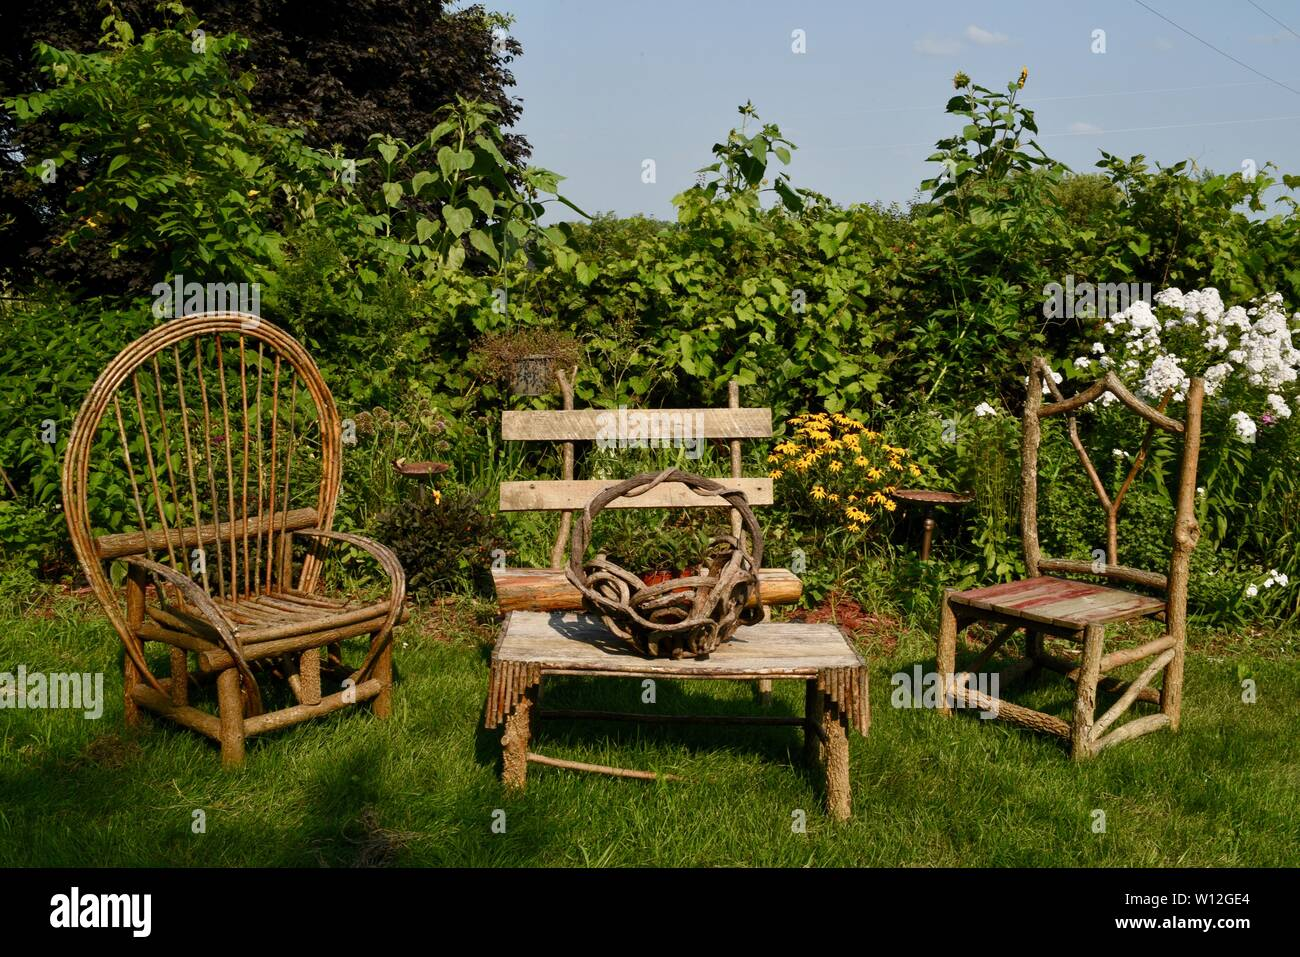 Mobilier Insolite Photos & Mobilier Insolite Images - Alamy